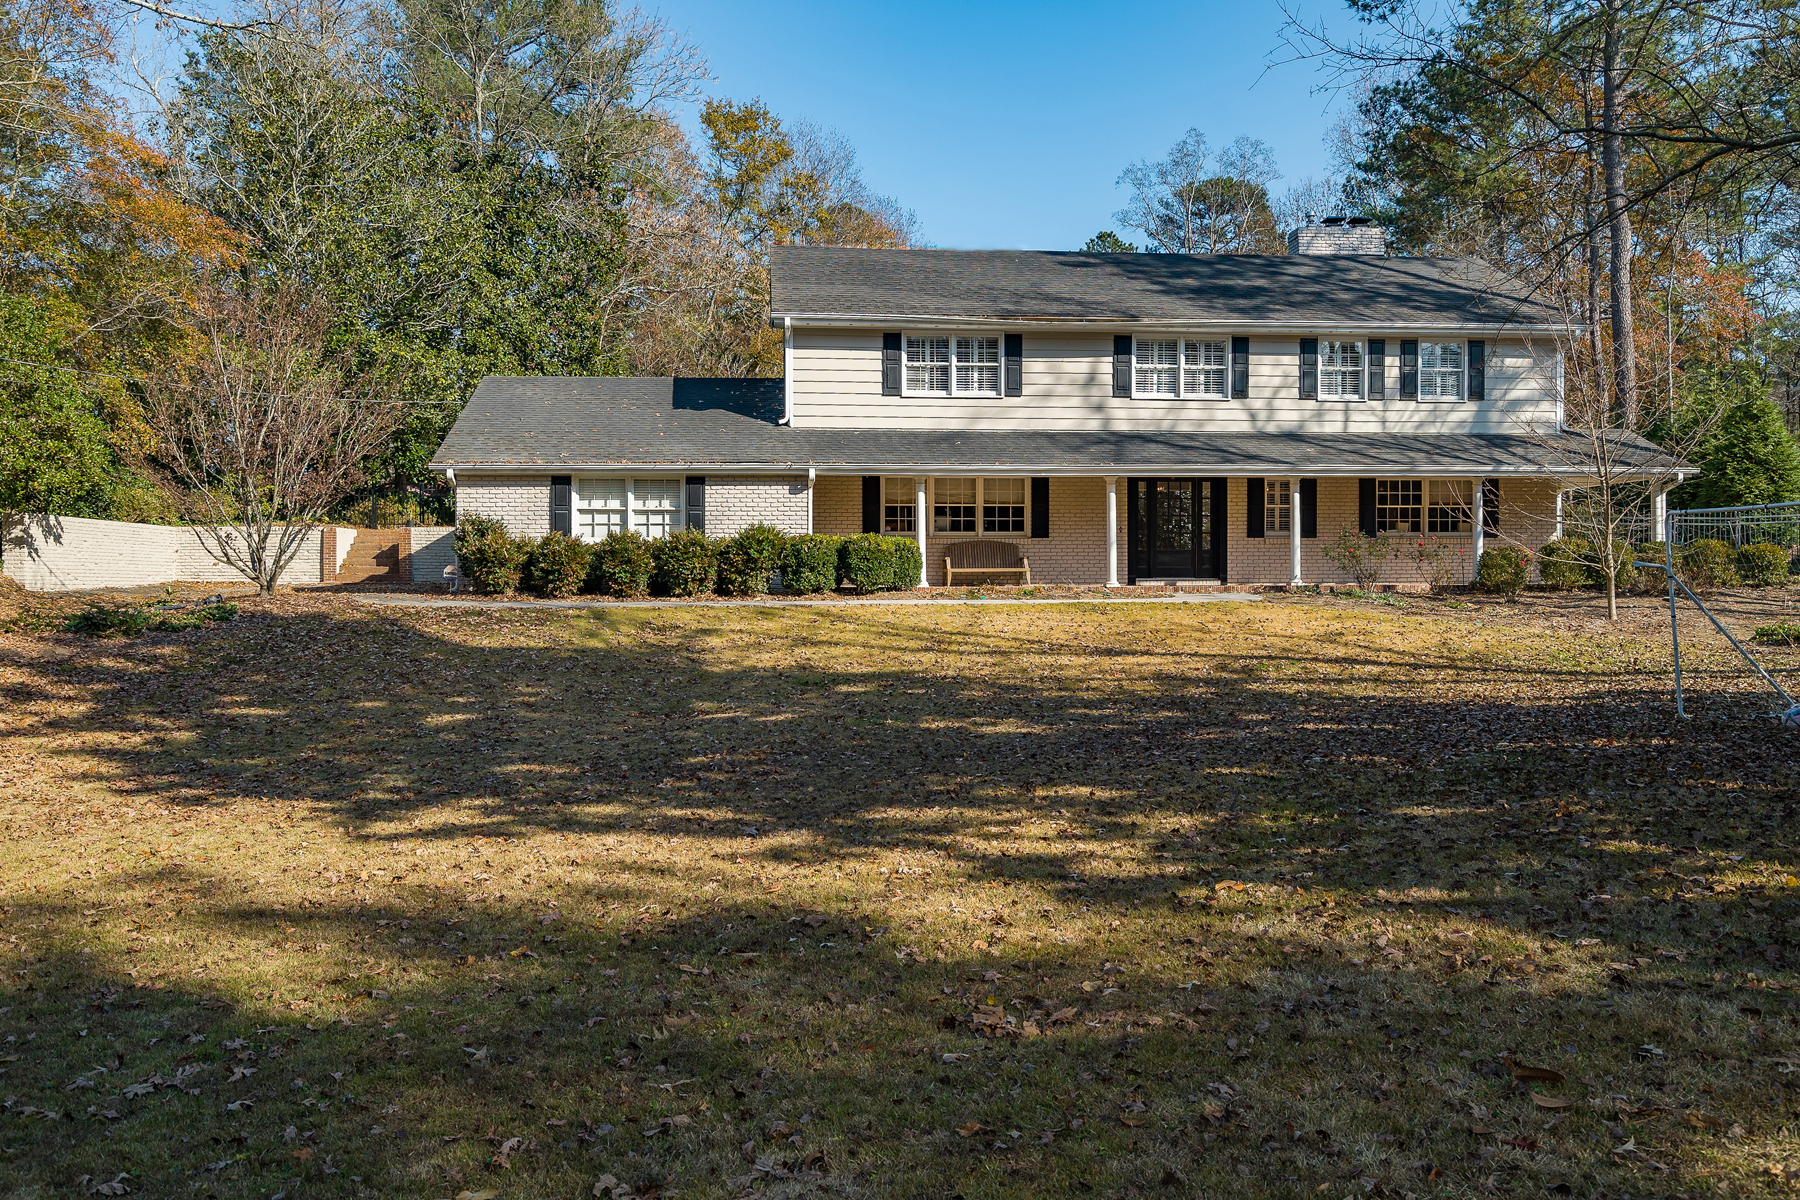 Over An Acre Lot In Sought After Londonberry, Renovated Home With Pool & Tennis 5245 Kenbrook Way Sandy Springs, Georgia 30327 United States